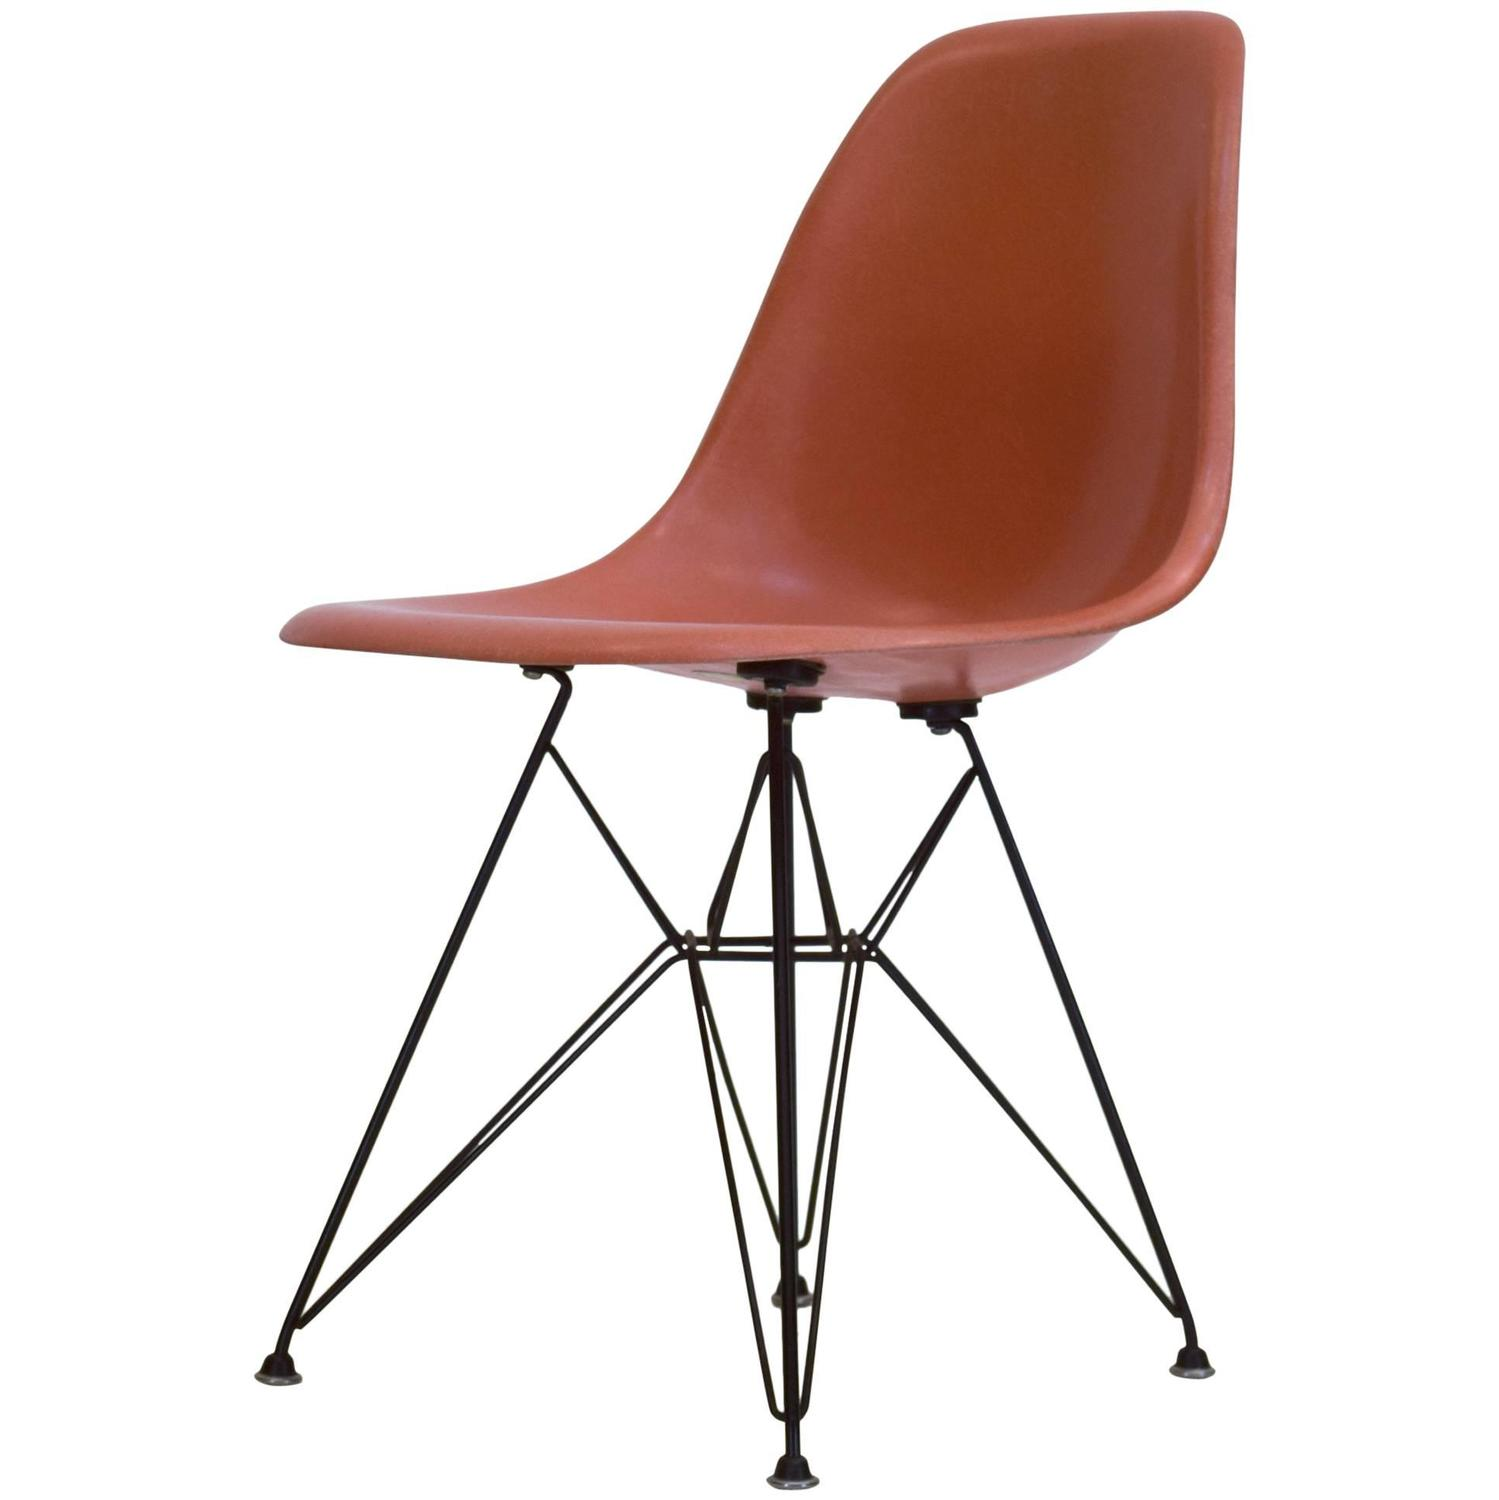 Original eames chair - Original Eames Chair